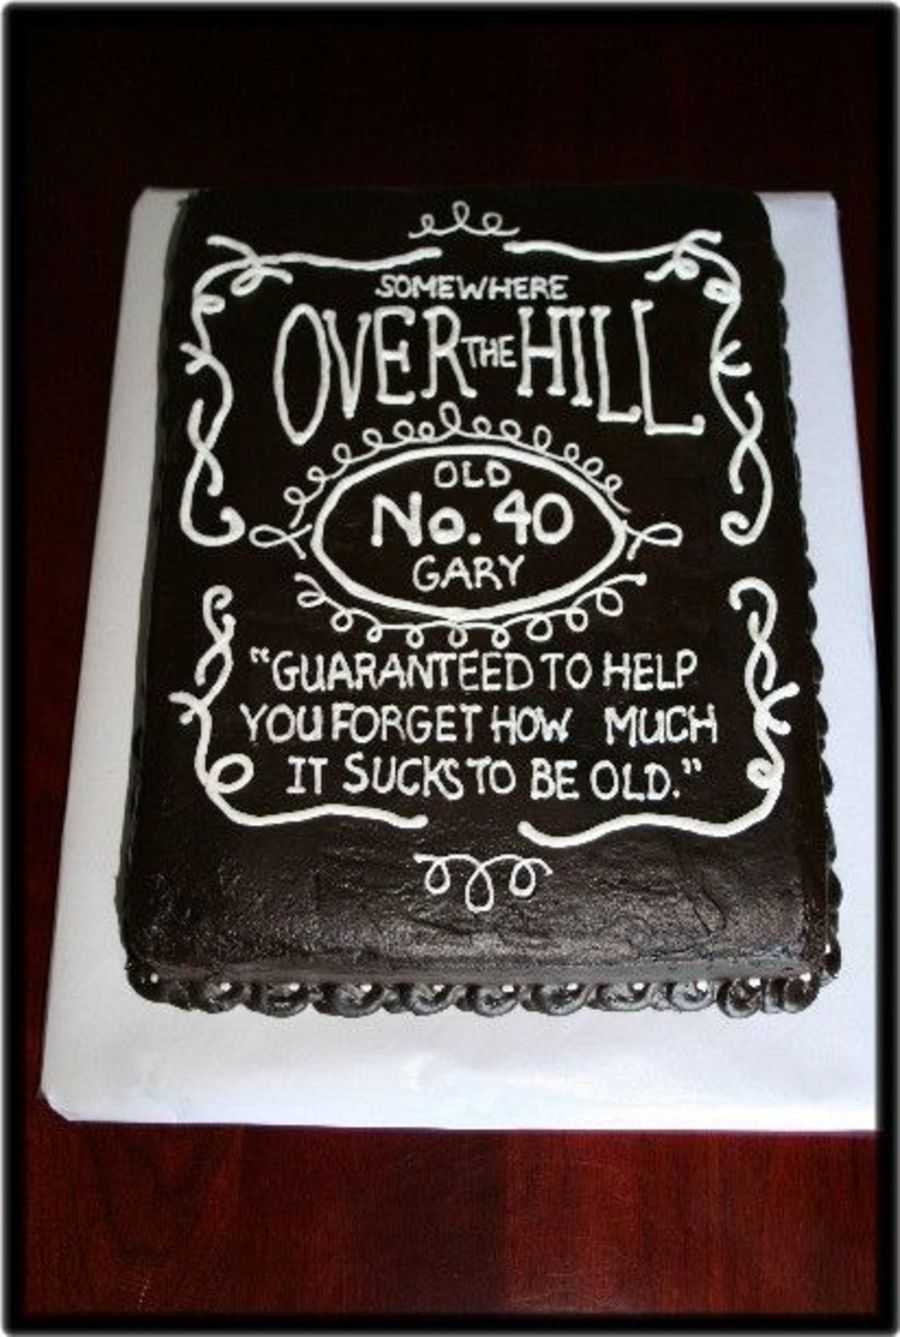 Over the hilljack daniels label with images birthday